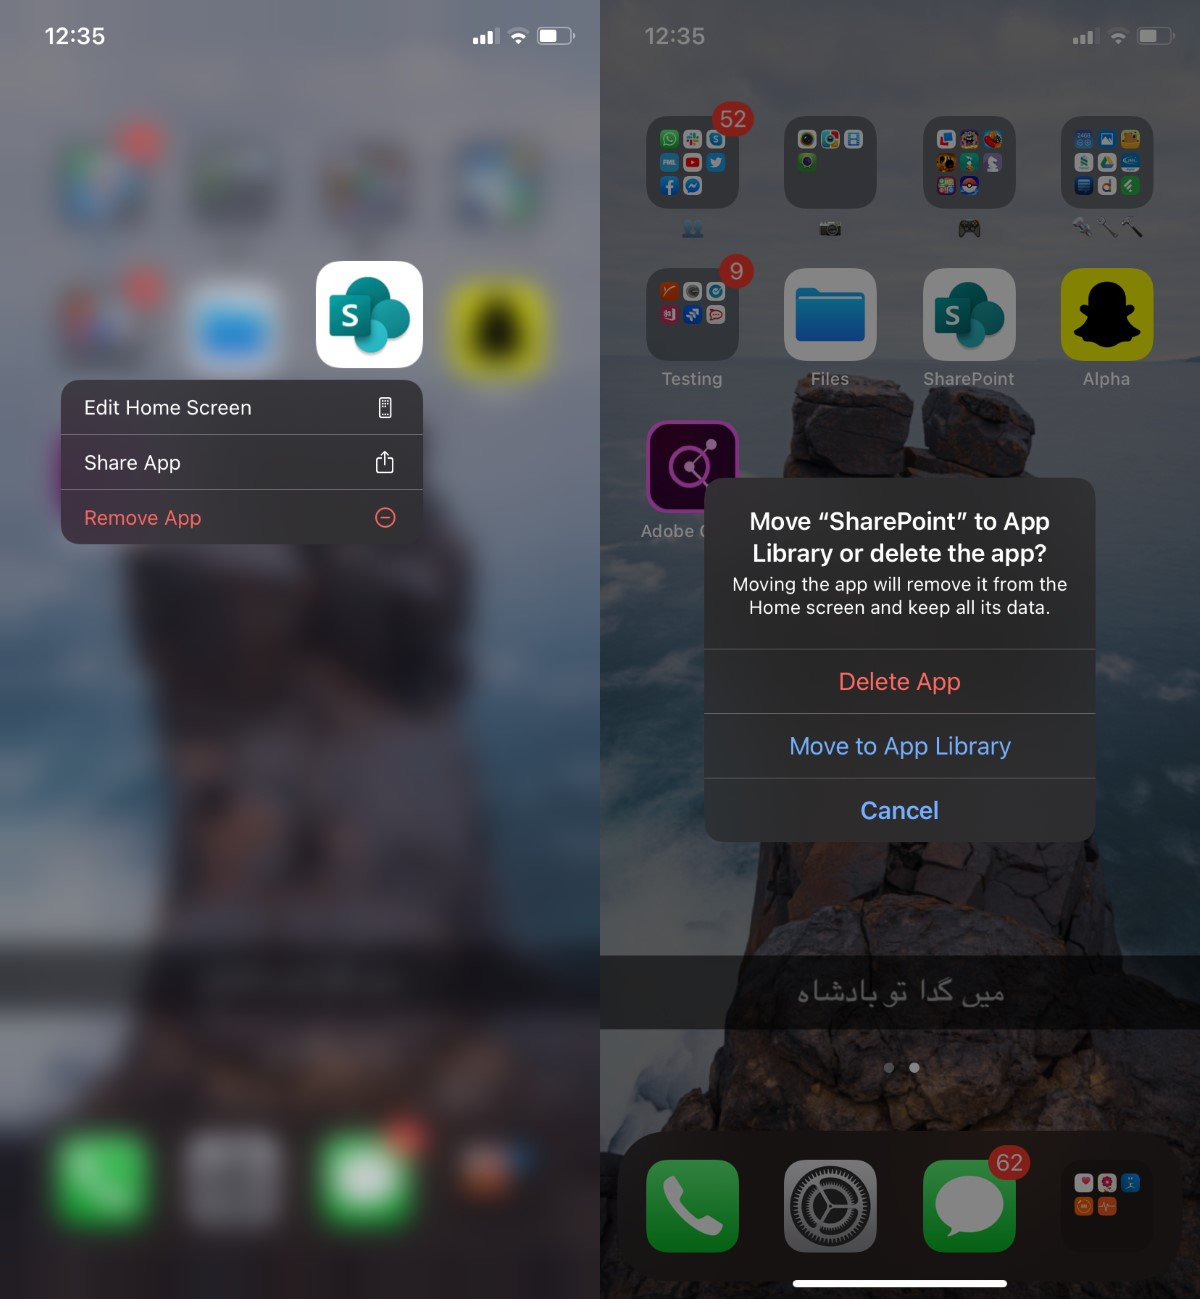 how to move apps to the home screen and app library on iphone 1 How to move apps to the Home screen and App library on iPhone